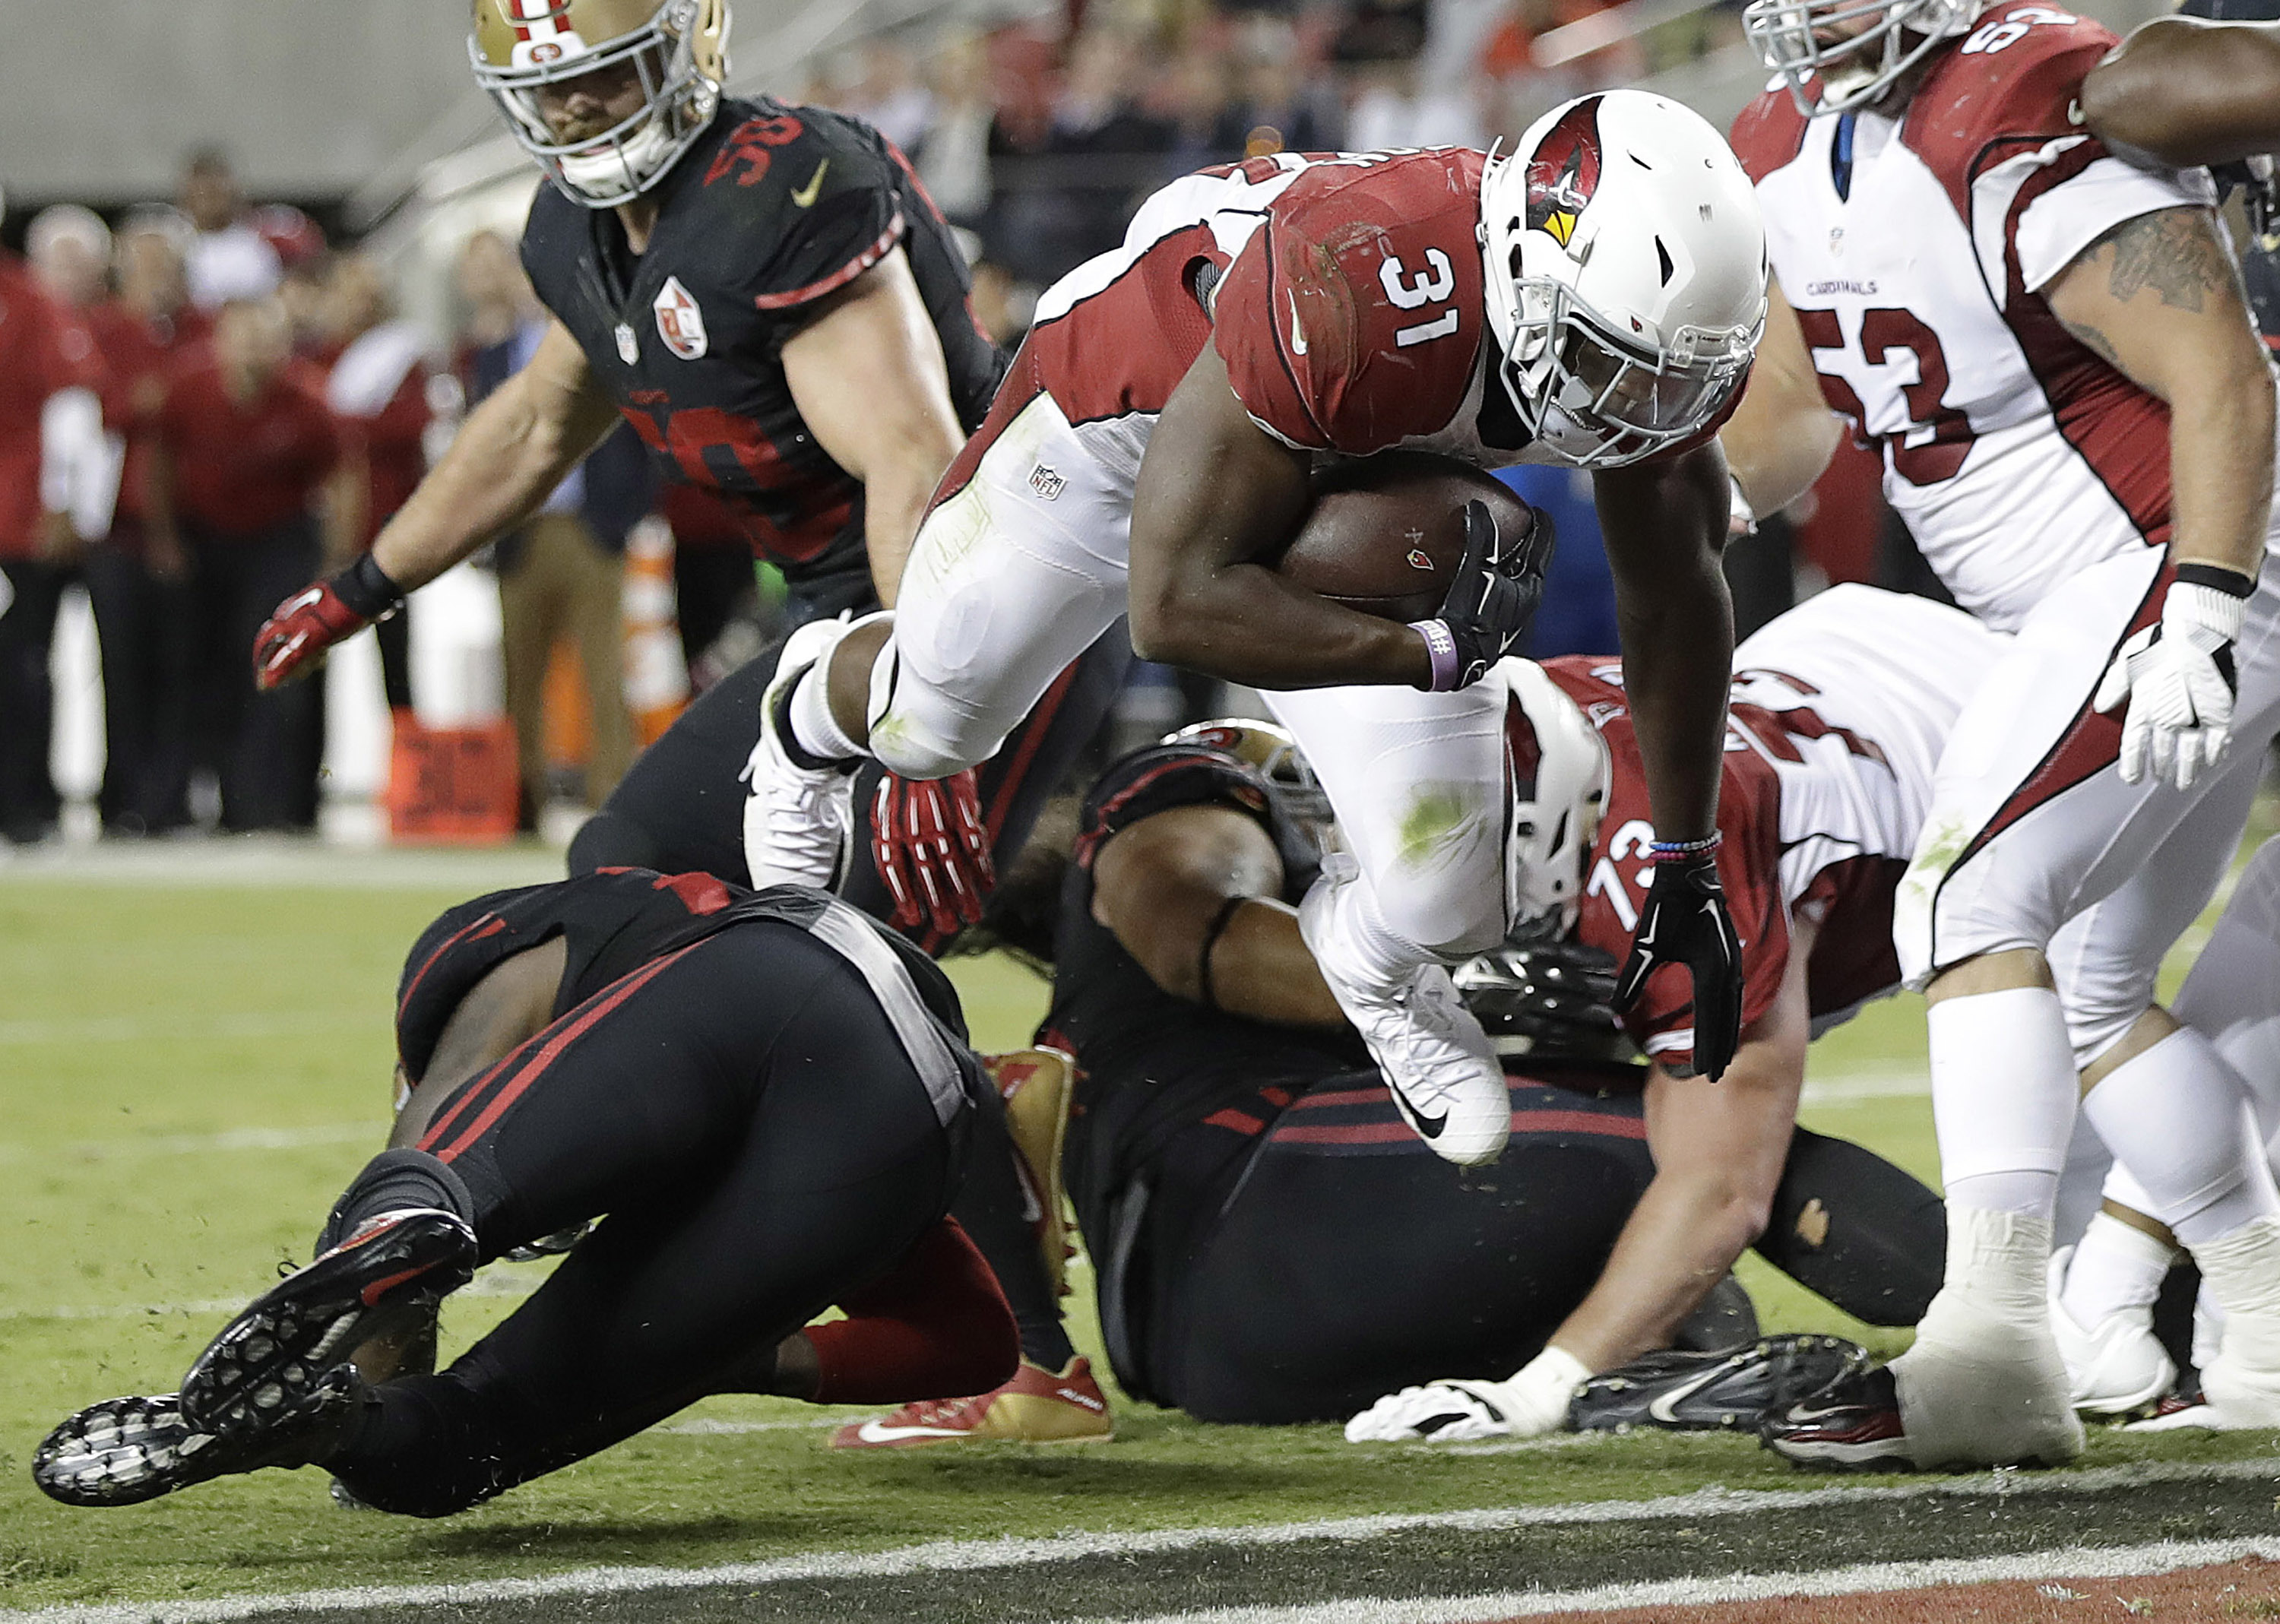 Arizona Cardinals running back David Johnson (31) scores a touchdown against the San Francisco 49ers during the second half of an NFL football game in Santa Clara, Calif., Thursday, Oct. 6, 2016. (AP Photo/Marcio Jose Sanchez)